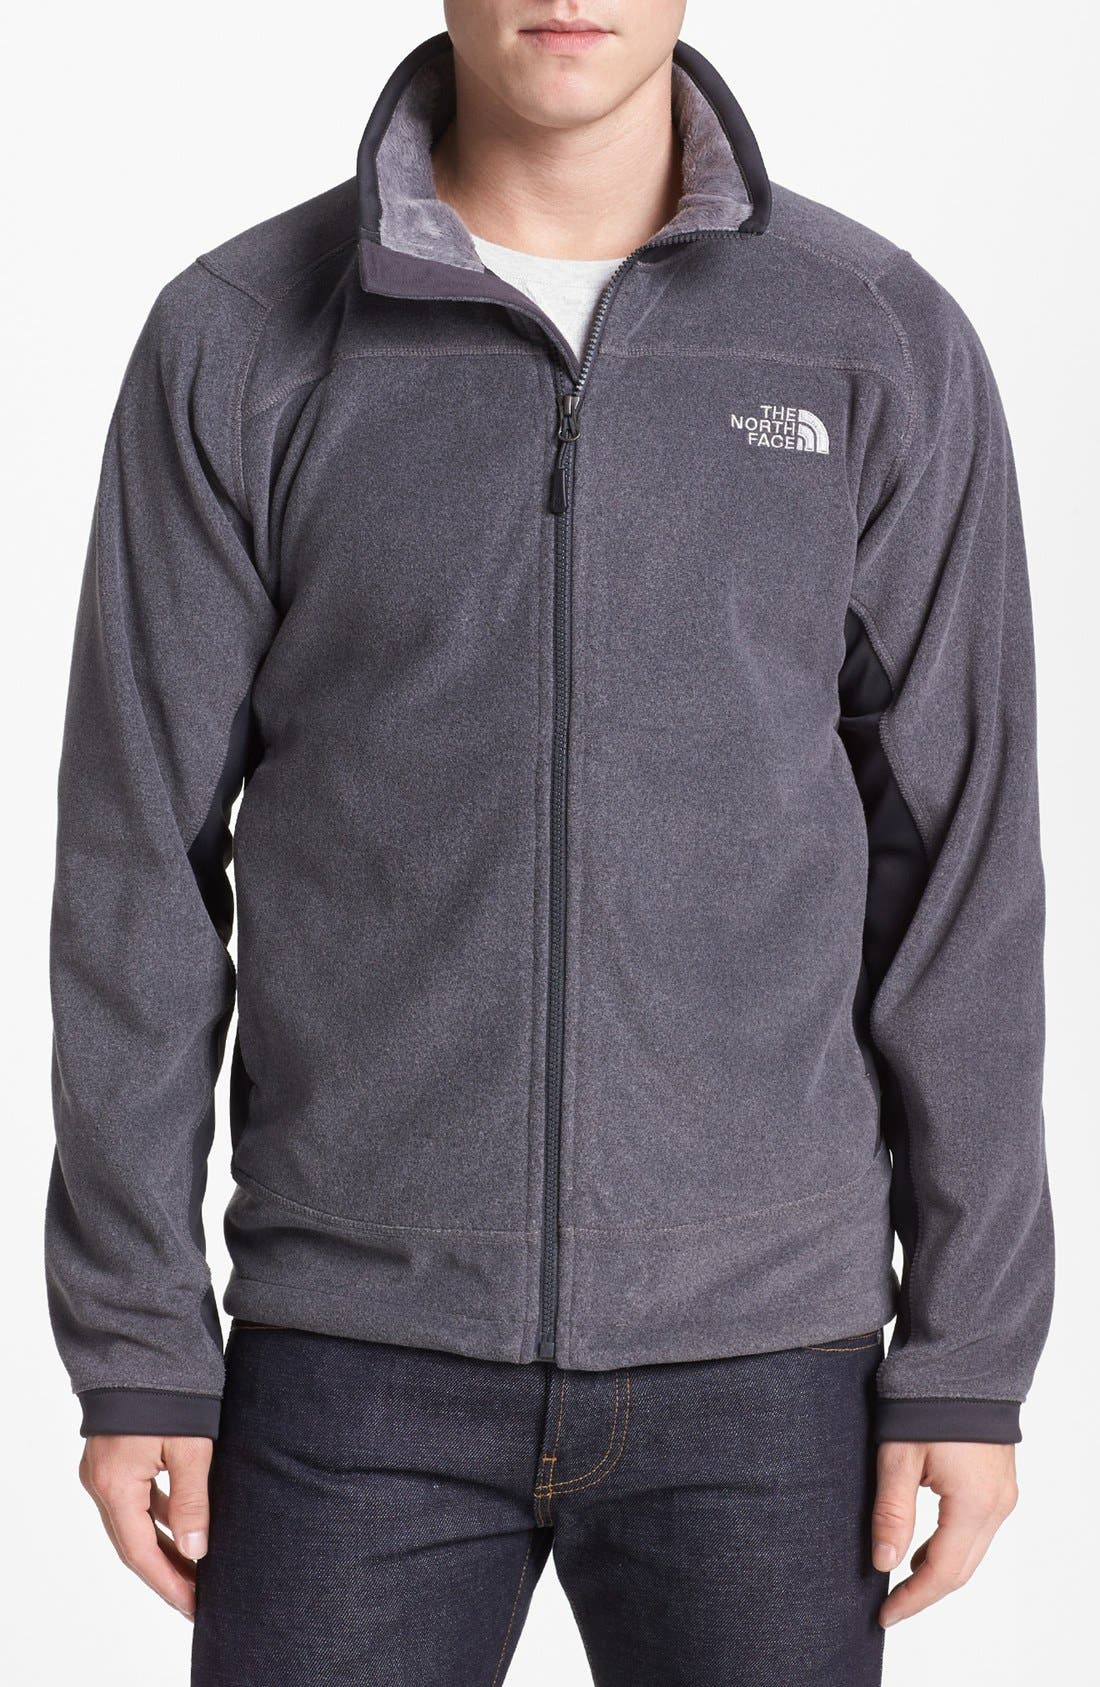 Alternate Image 1 Selected - The North Face 'Valence' FlashDry™ Fleece Jacket